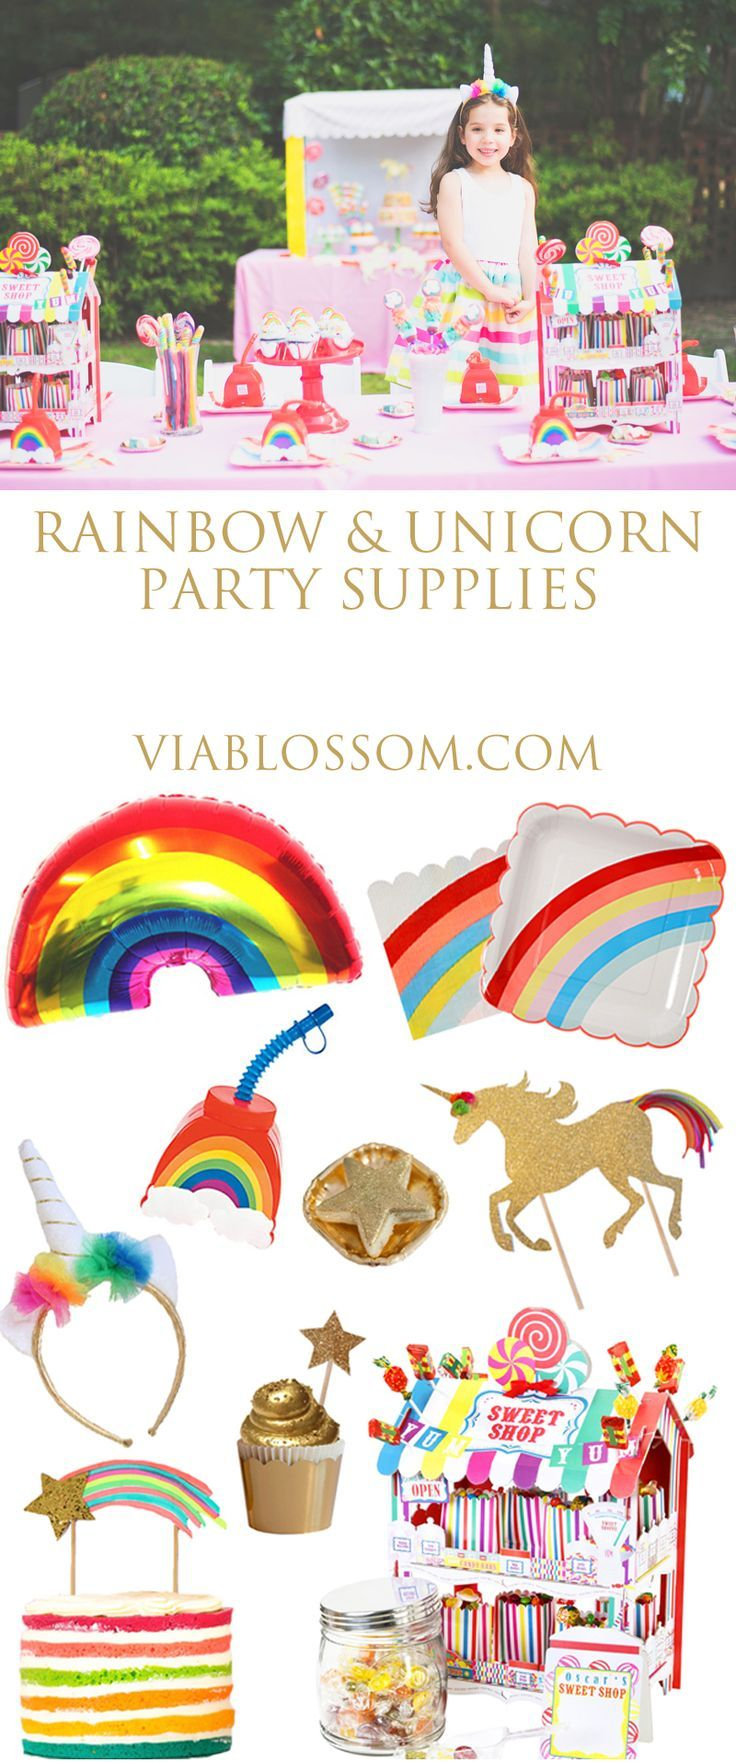 Rainbow Unicorn Party Supplies such as rainbow foil balloon, rainbow cups, rainbow plates, napkins, unicorn headband, unicorn cake topper!   All your Unicorn Party decorations in one place!